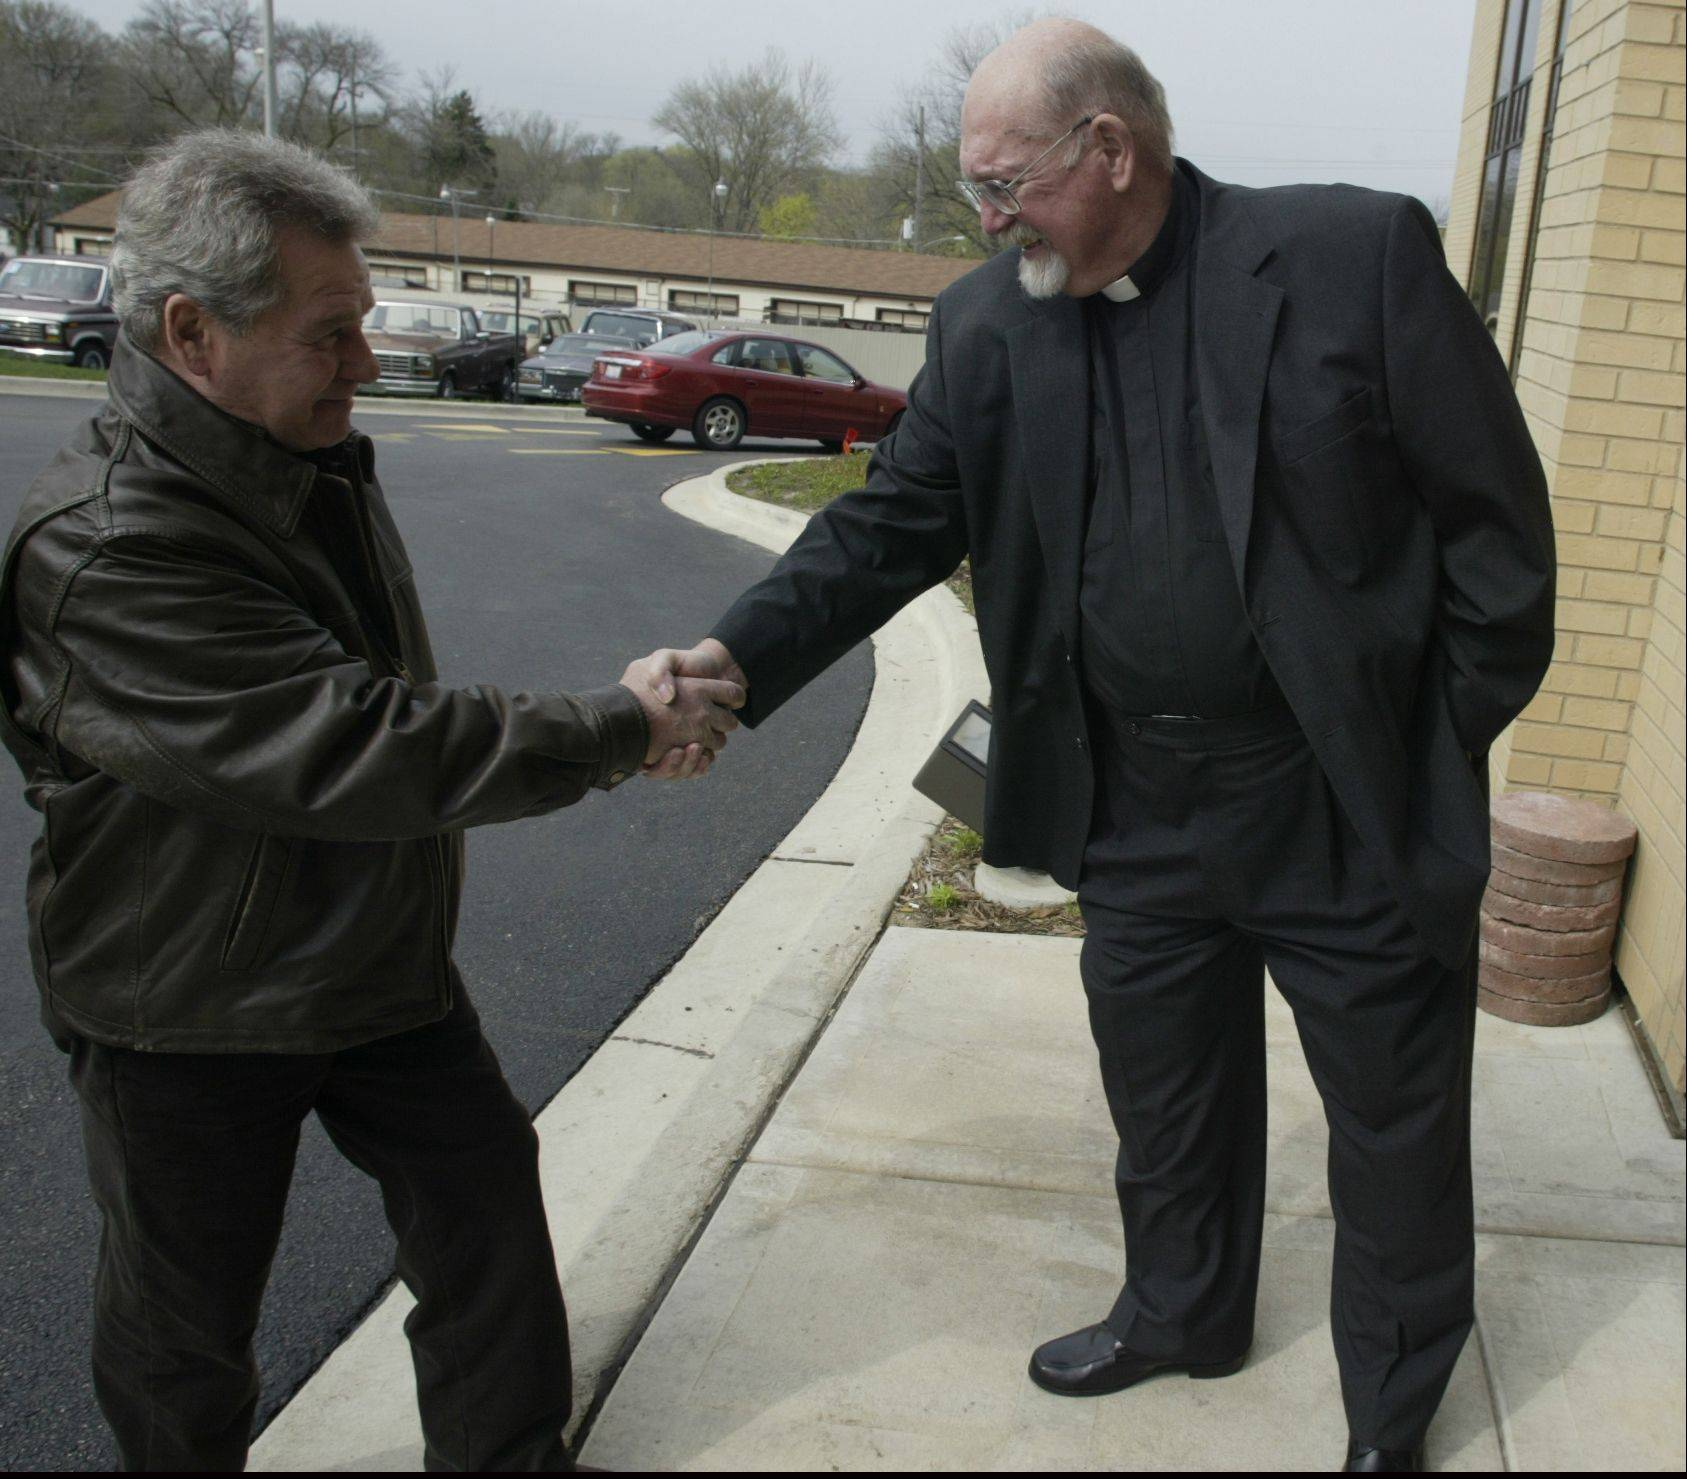 Associate Pastor the Rev. Bruce Meissner, right, greets a churchgoer at Immanuel Lutheran Church in East Dundee. This weekend the congregation will celebrate Meissner's 50th anniversary as a pastor within the Lutheran Church Missouri Synod.